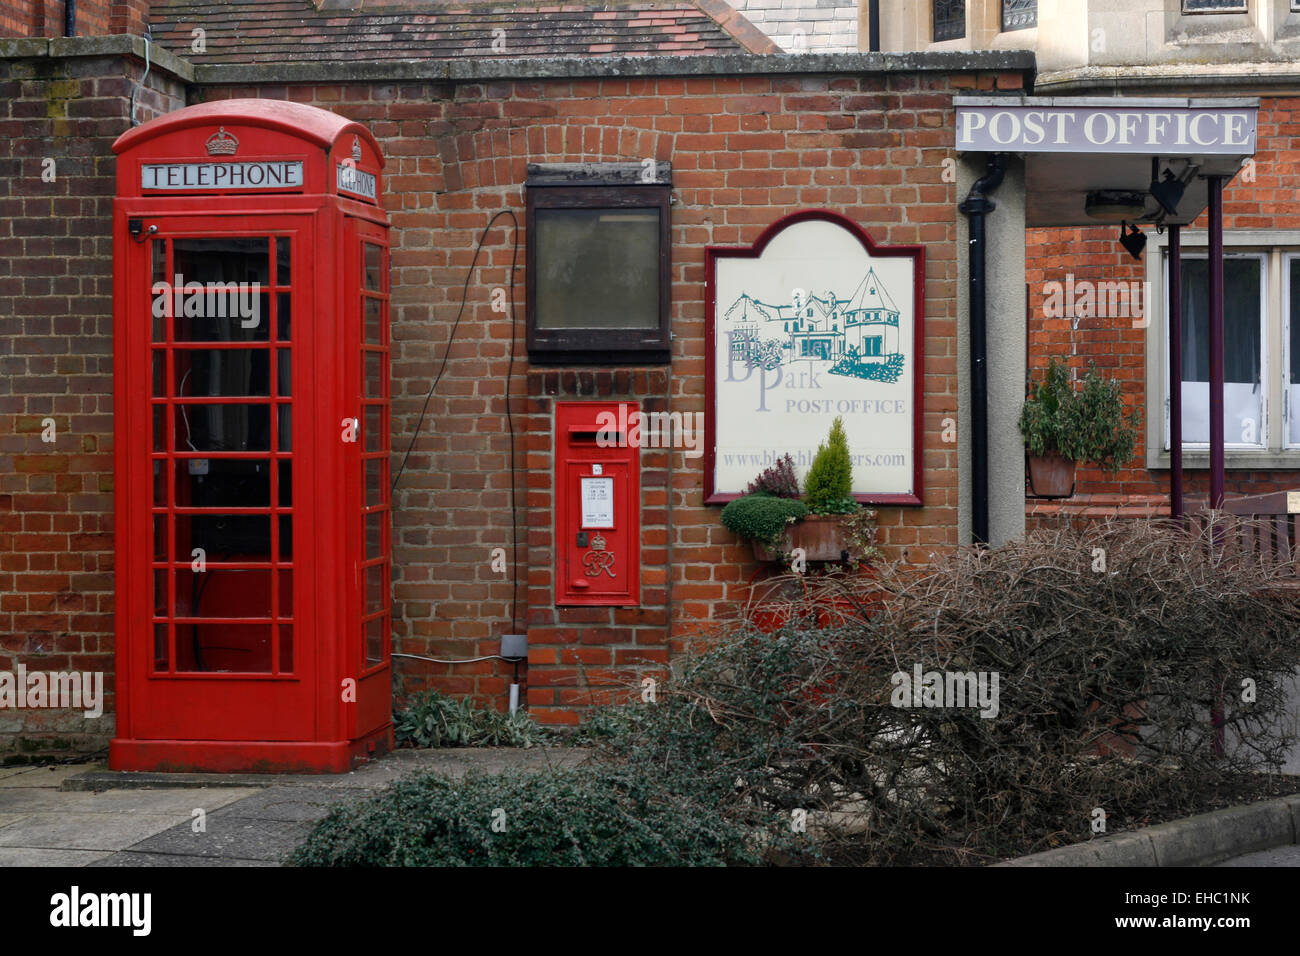 Bletchley Park Post Office with red telephone box Bletchley Buckingamshire England - Stock Image